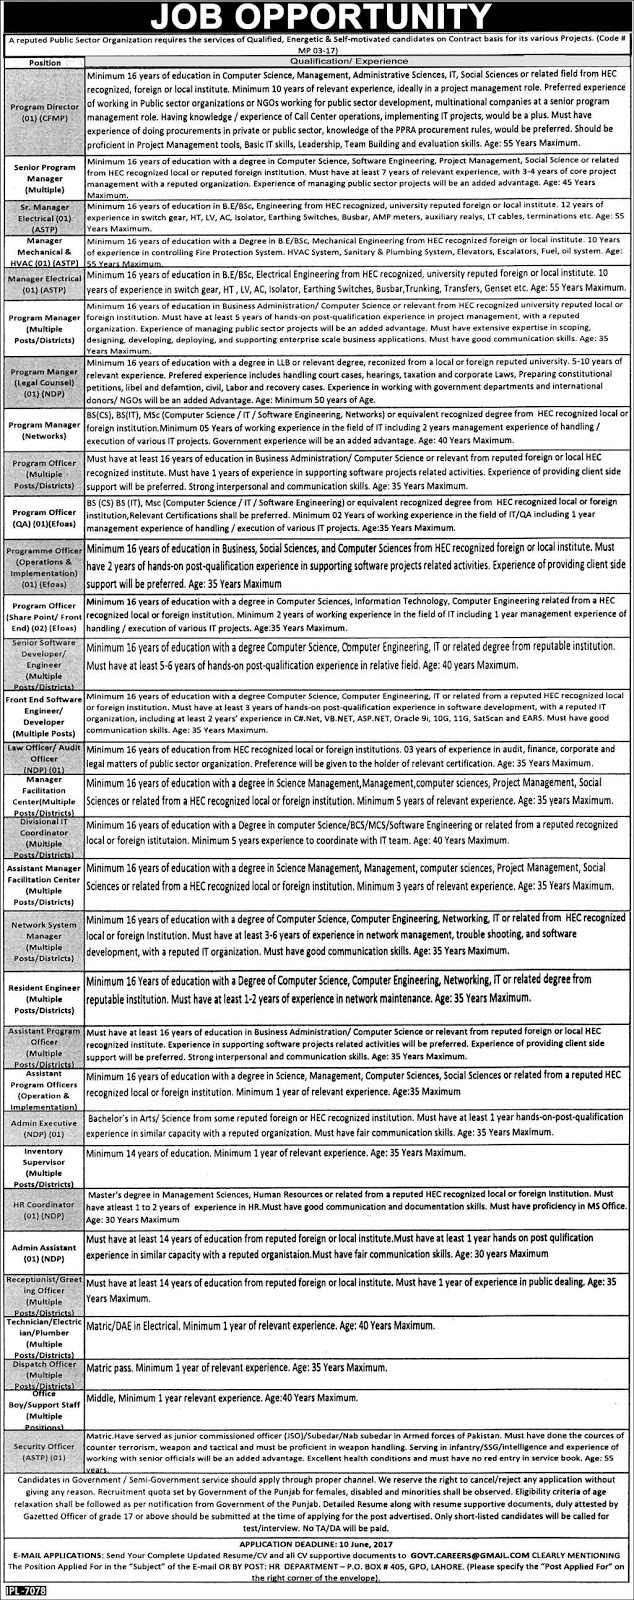 Self Motivated Jobs In Public Sector Organization Islamabad  29 May 2017